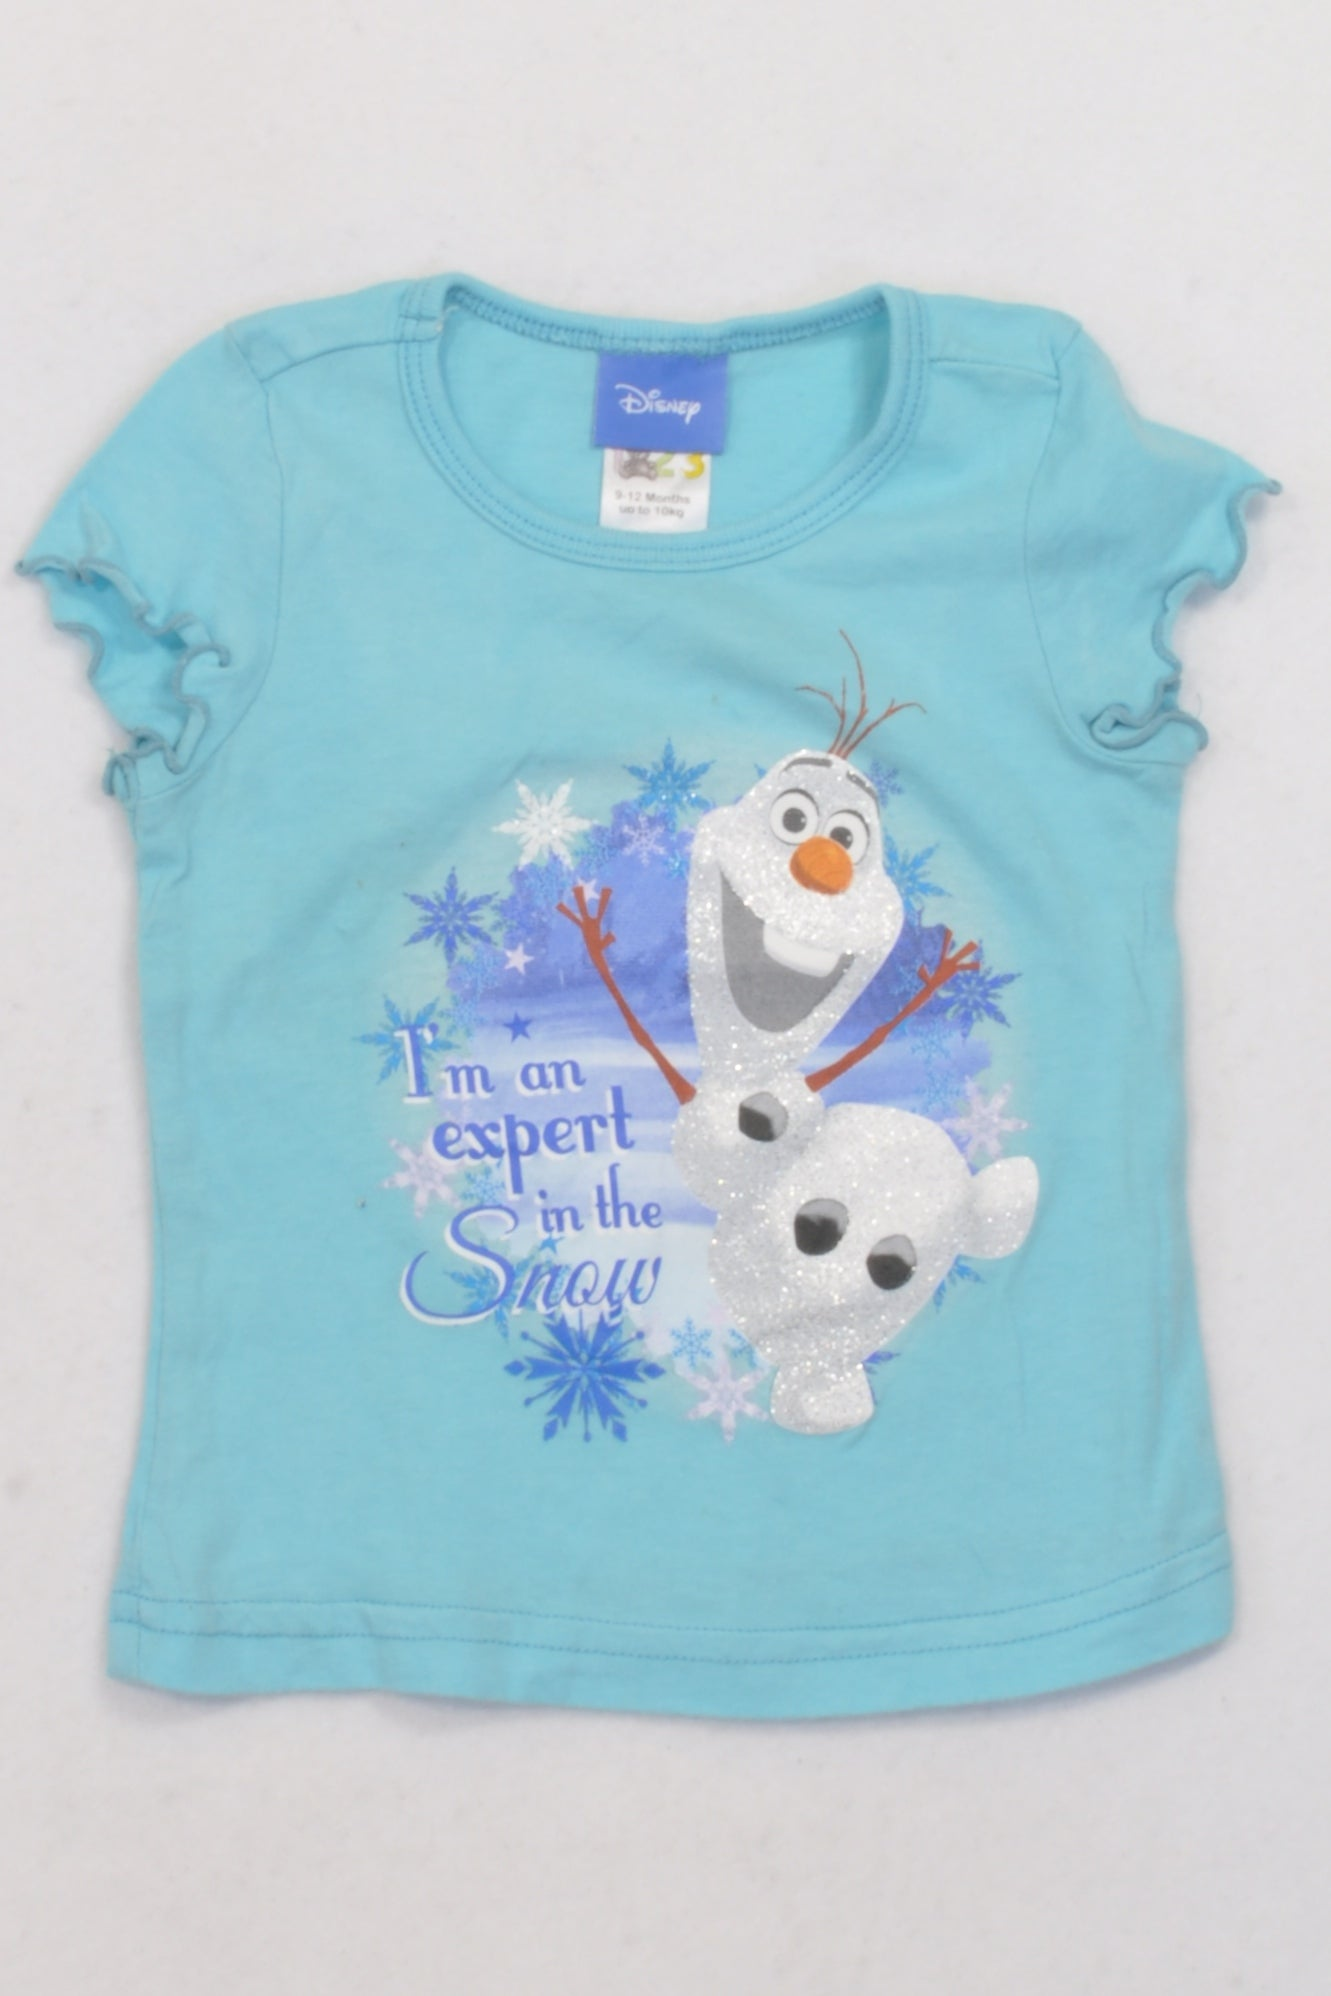 Edgars Blue Olaf Snow Expert T-shirt Girls 9-12 months